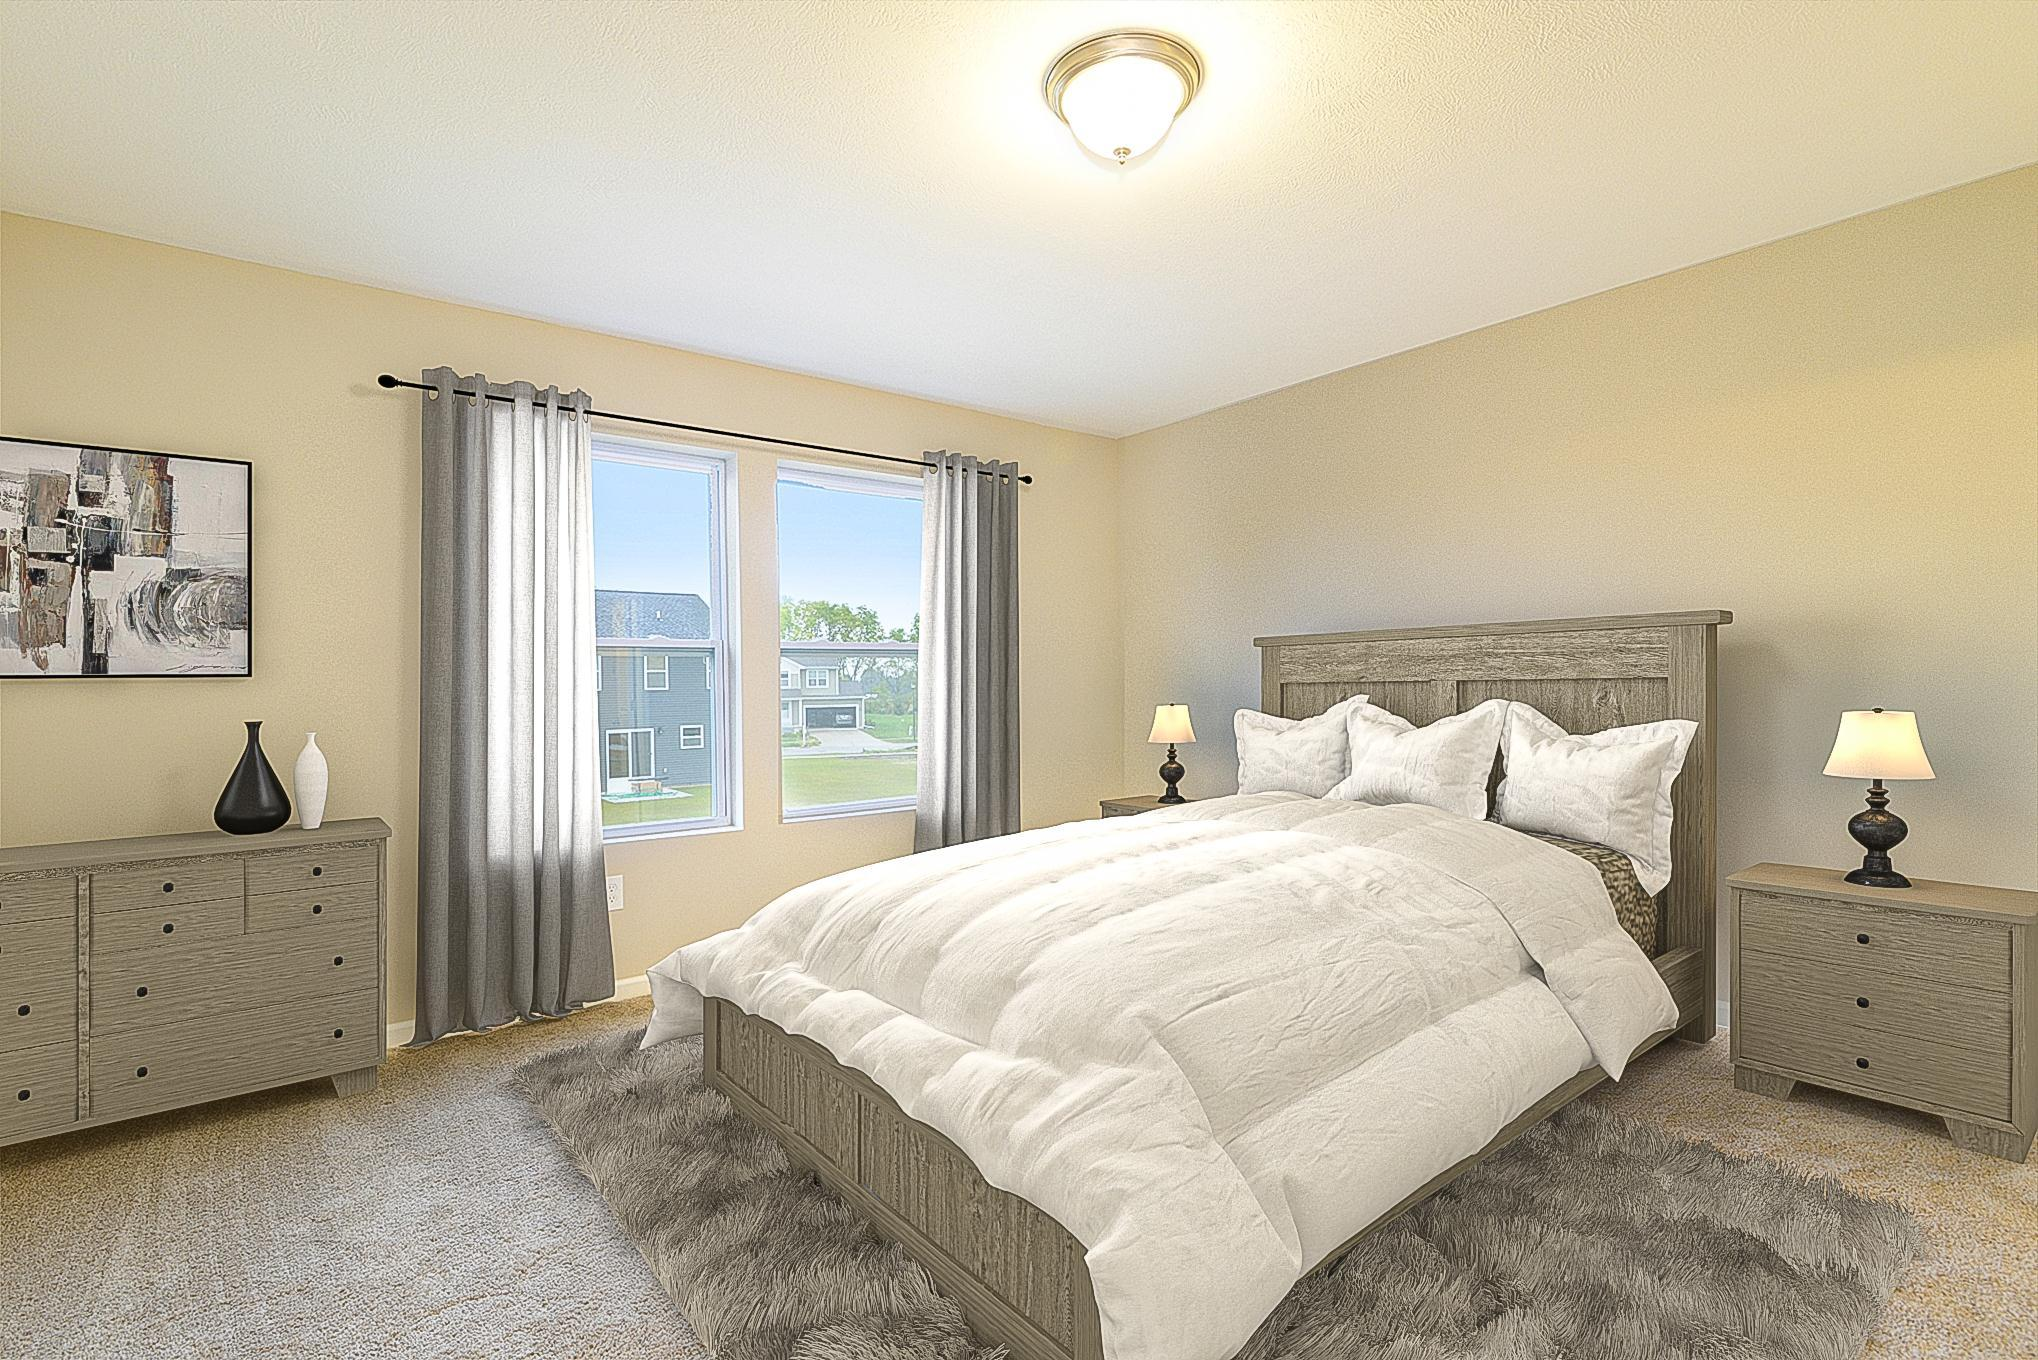 Bedroom featured in the Elements 1700 By Allen Edwin Homes in South Bend, IN